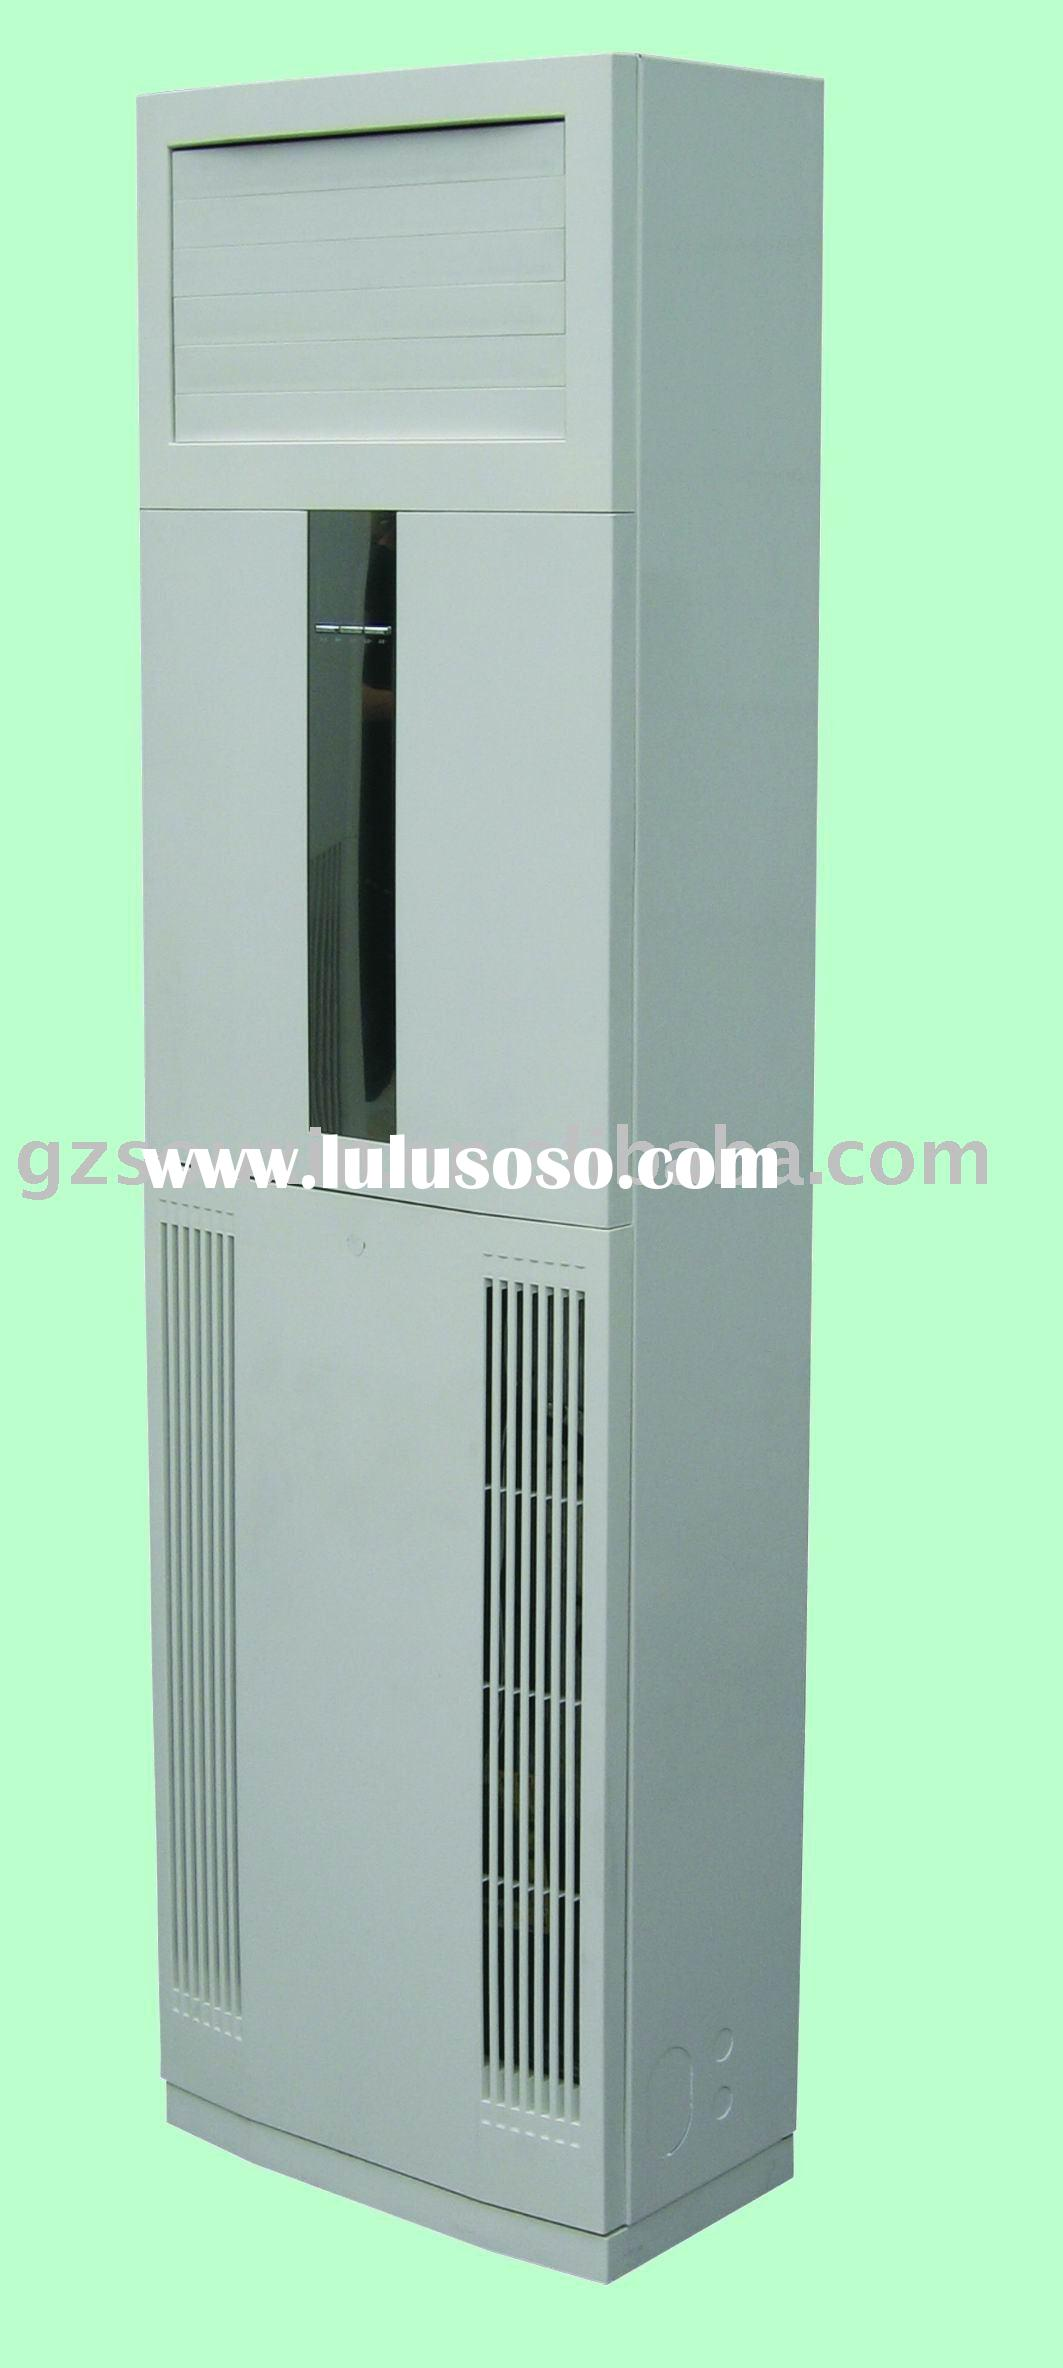 48000 btu standing split air conditioner